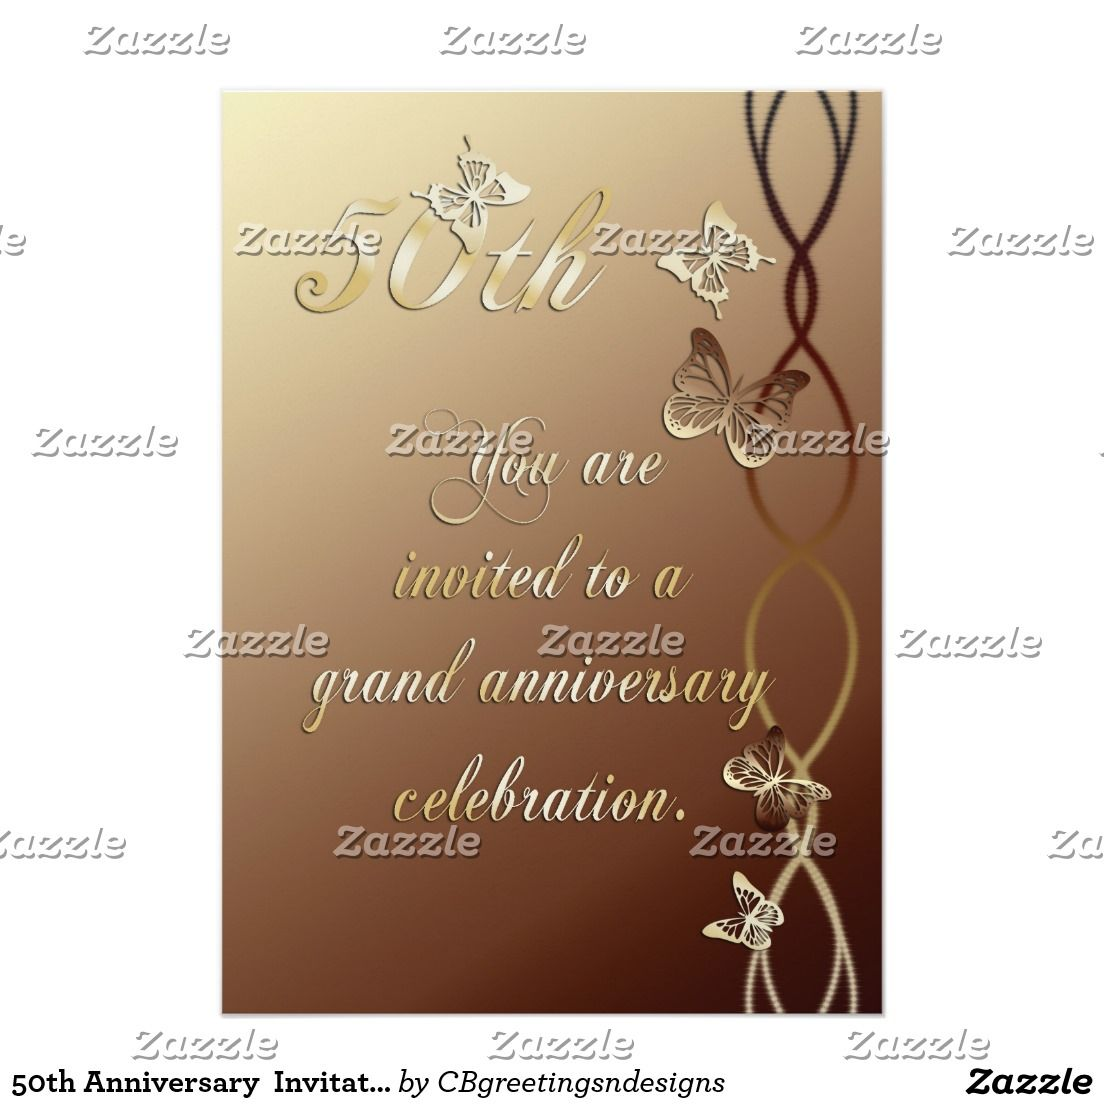 Th anniversary invitation cbgreetings greeting cards pinterest